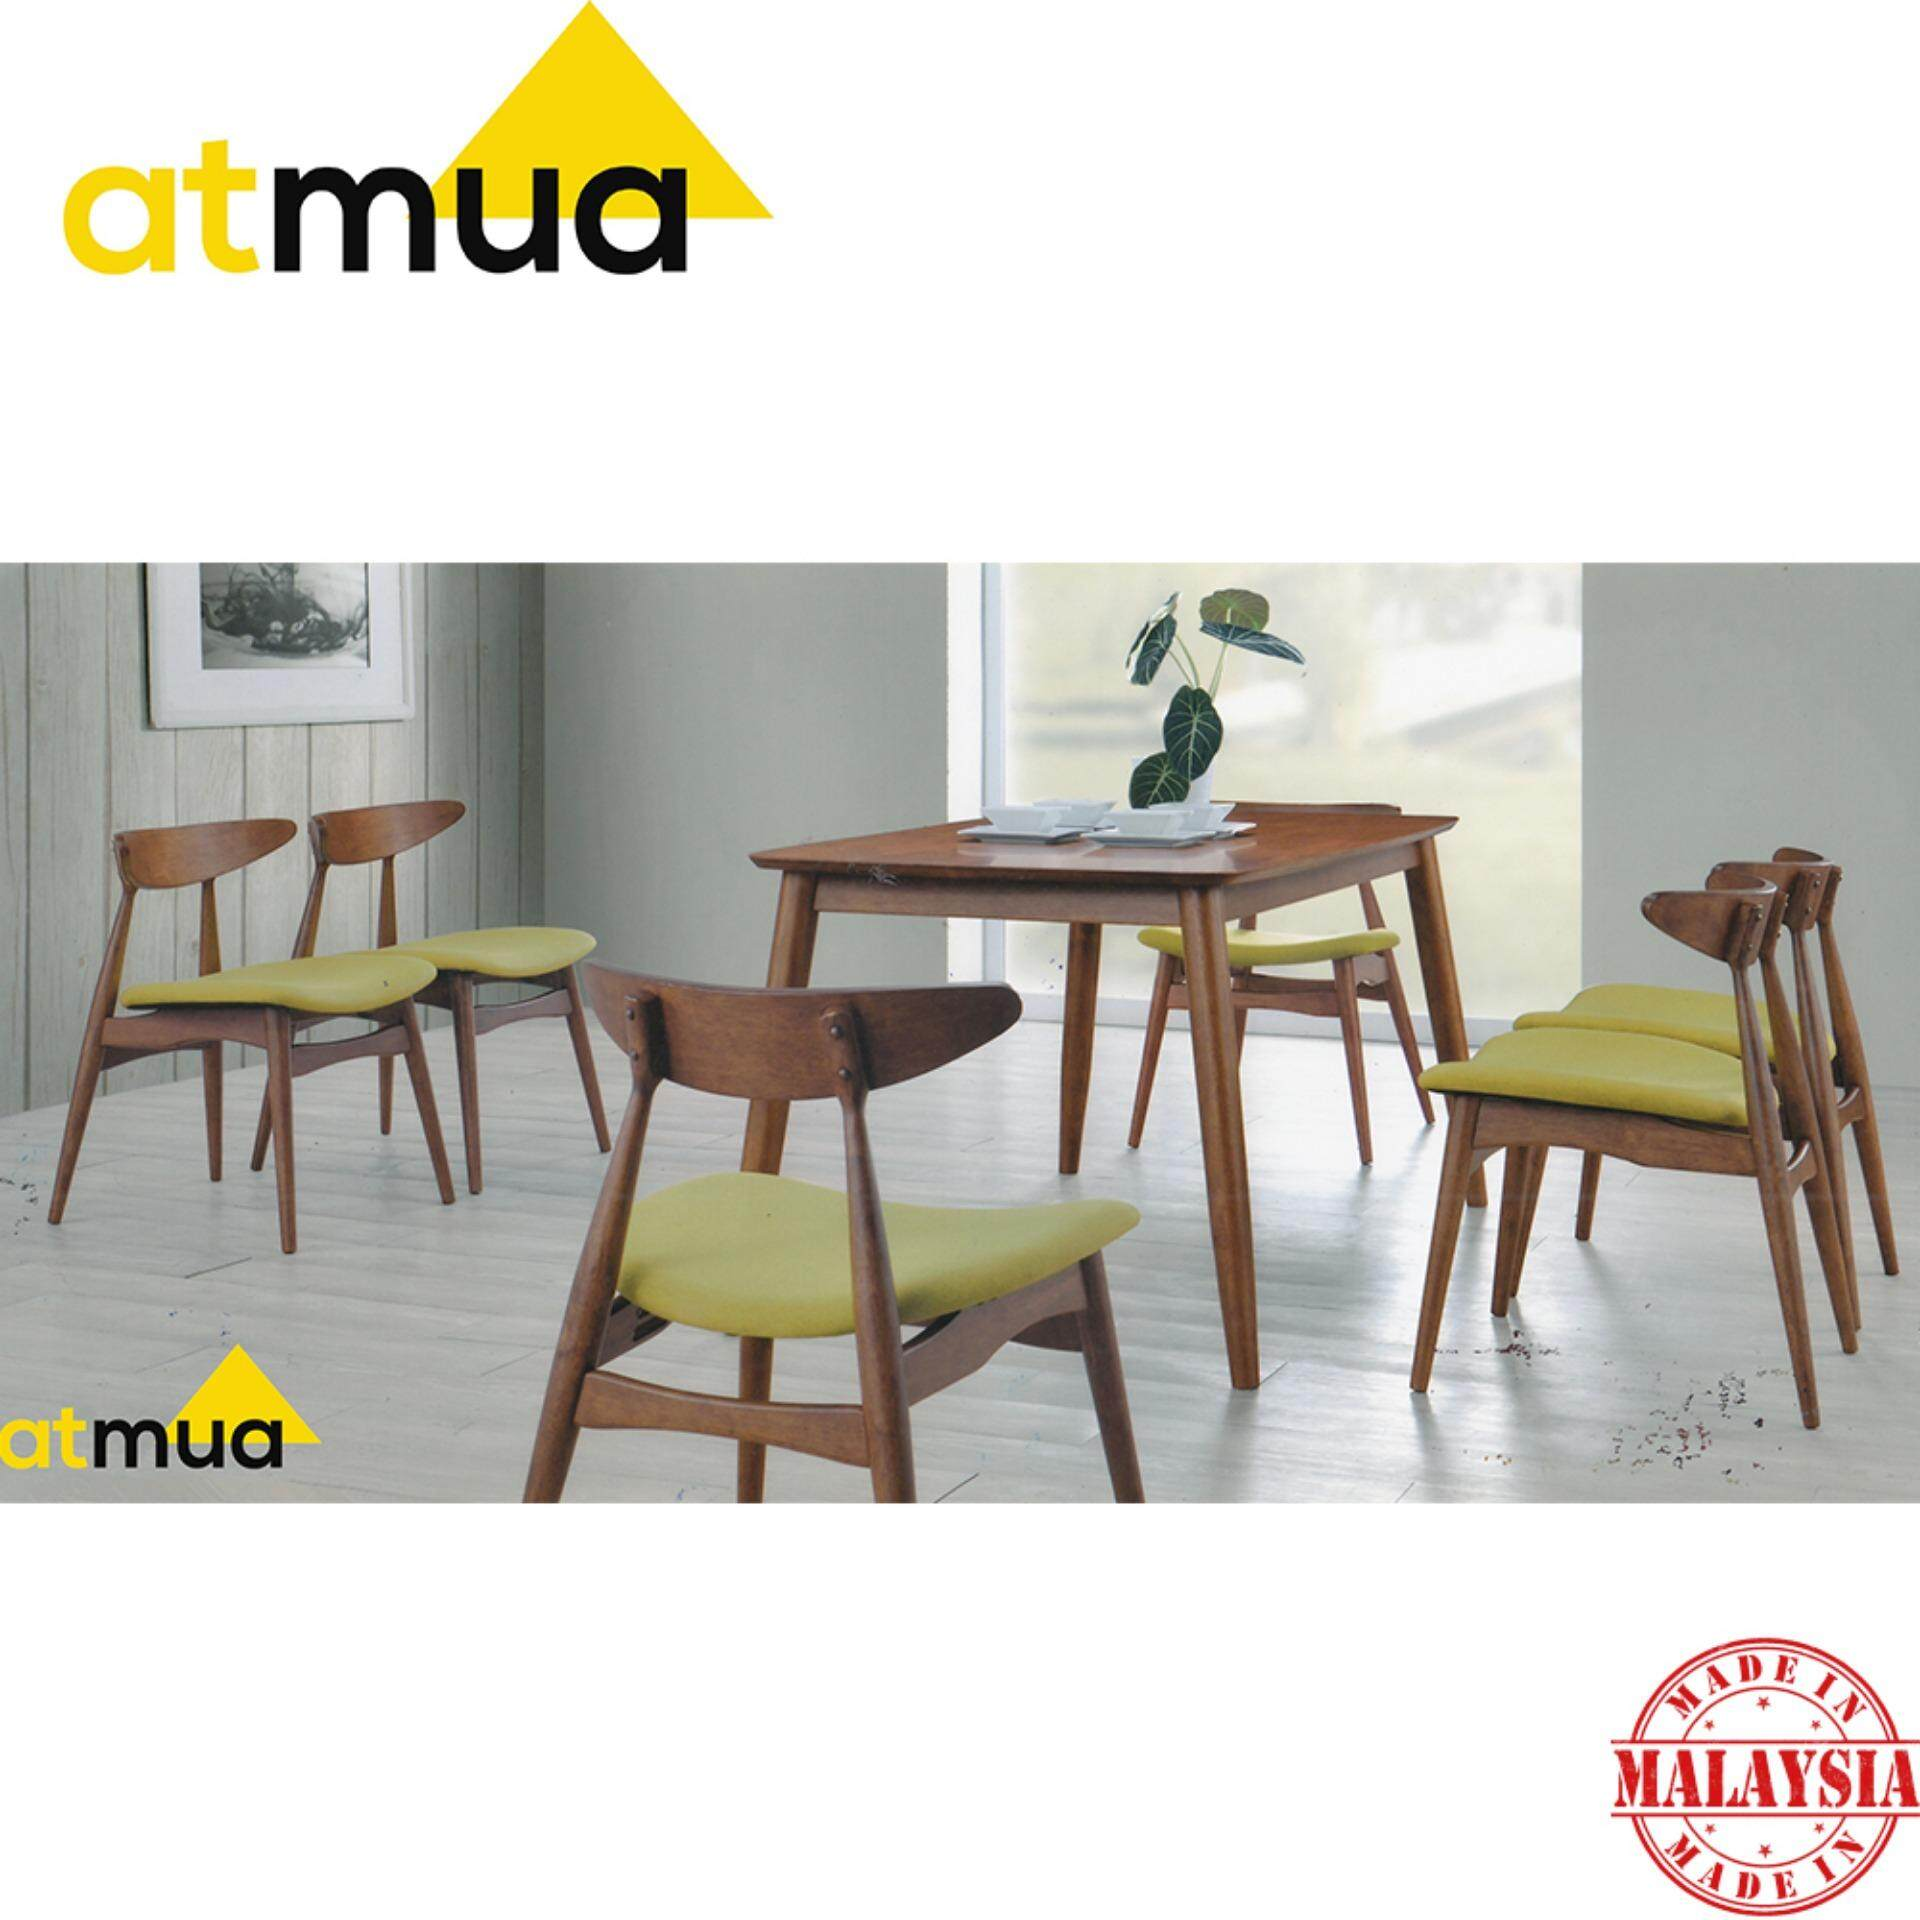 Atmua Borato Dining Set (1 Table + 6 Chair) - Scandinavian Style [Full Solid Wood]